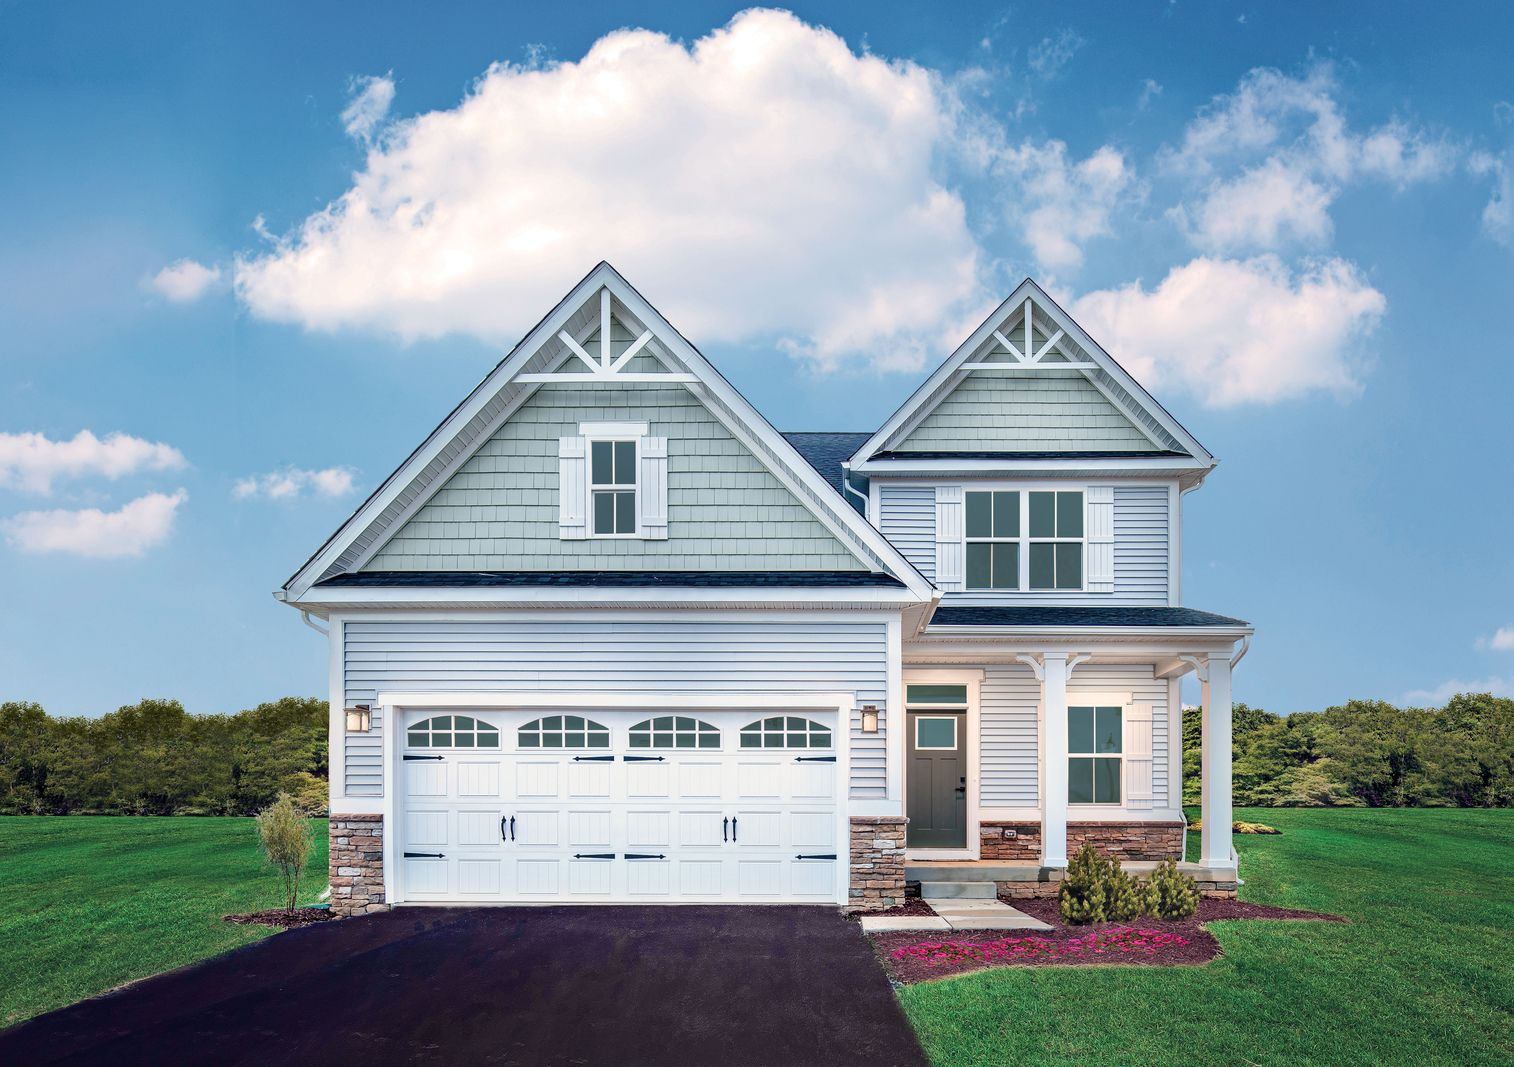 Welcome home to Howlett Acres:The most included features in any new homes in Henrietta, with private homesites, low taxes, and convenient to the shopping district, 390, and I-90.Click hereto schedule your appointment today.